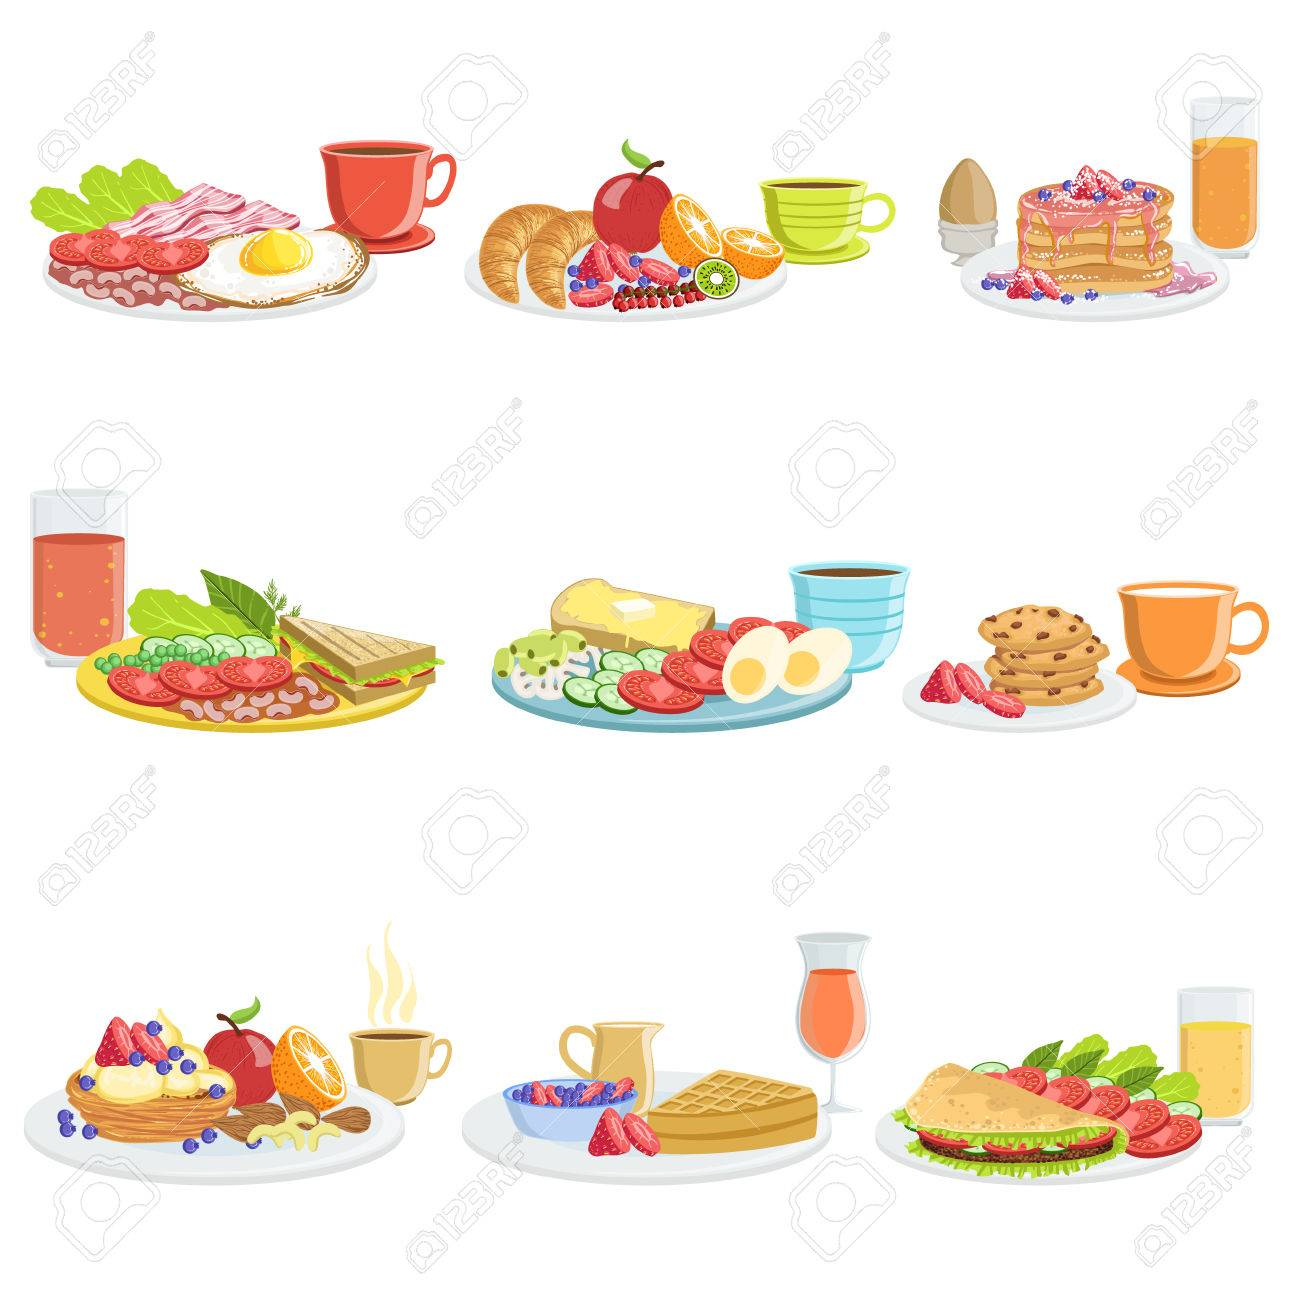 Breakfast Meal Different Sets. Collection Of Morning Menu Plates...